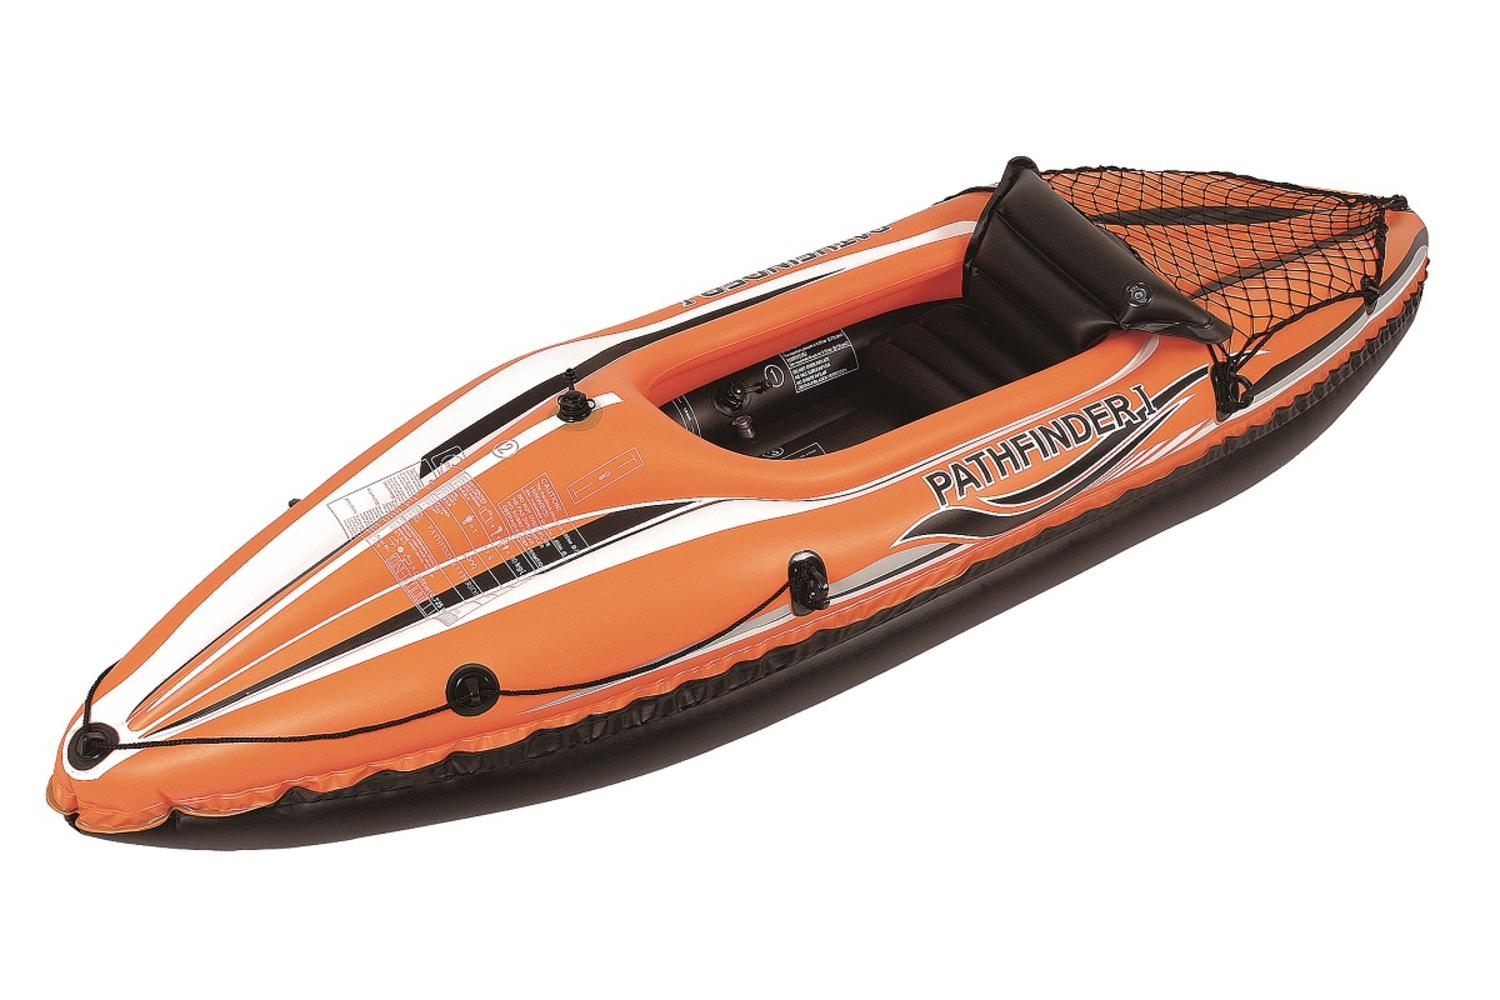 """108"""" Orange and Black """"Pathfinder I"""" Inflatable Single Person Kayak by Pool Central"""